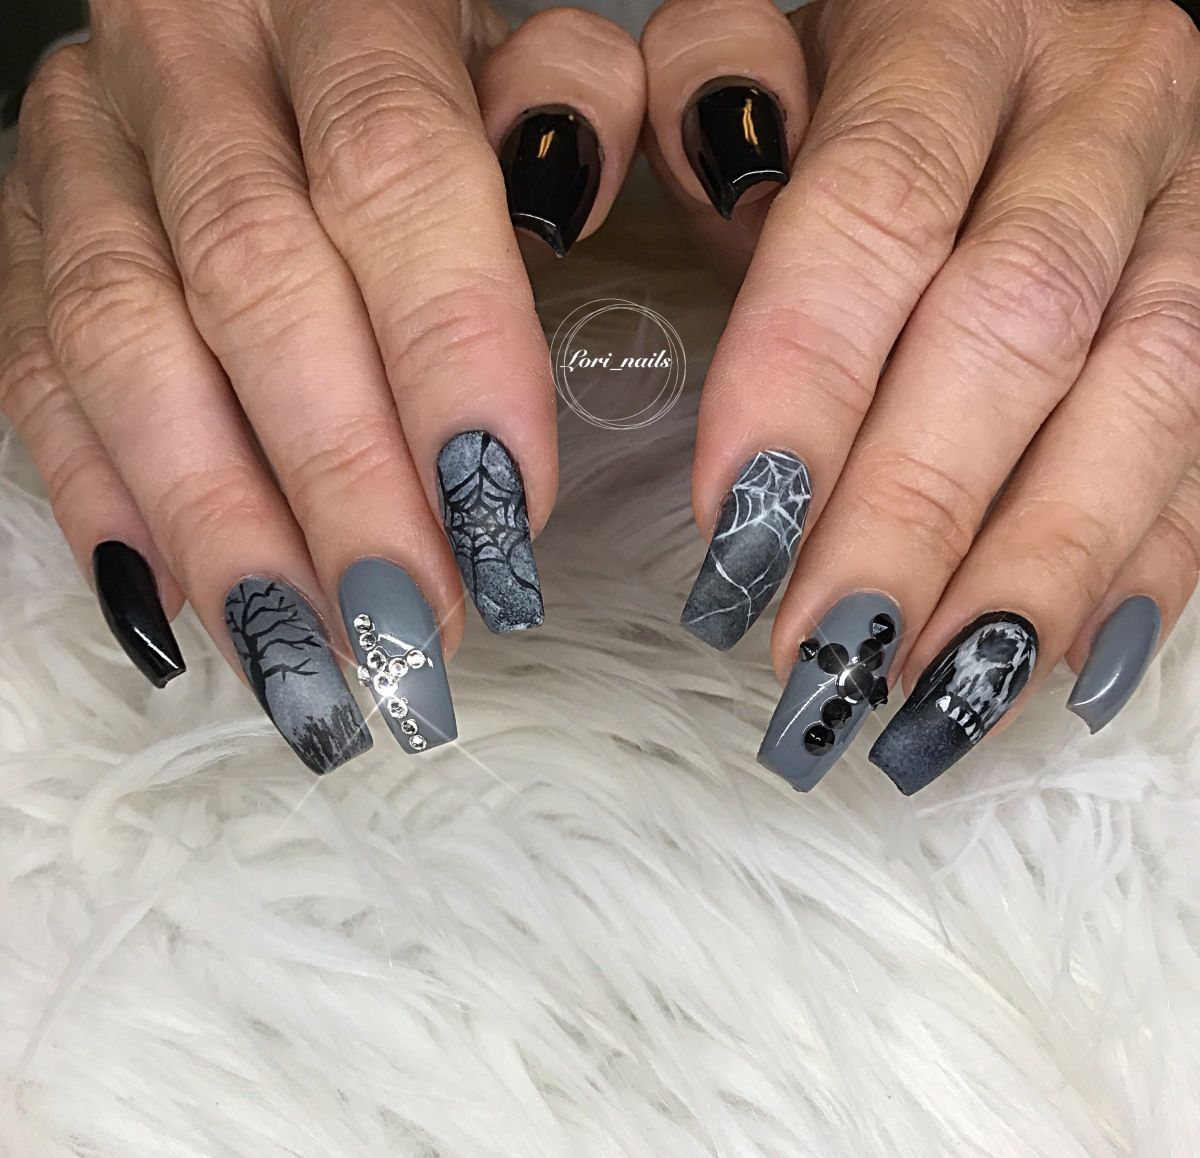 Christmas Is Here Dreaming Of Nails New Years Nail Art Grey Nail Designs New Year S Nails